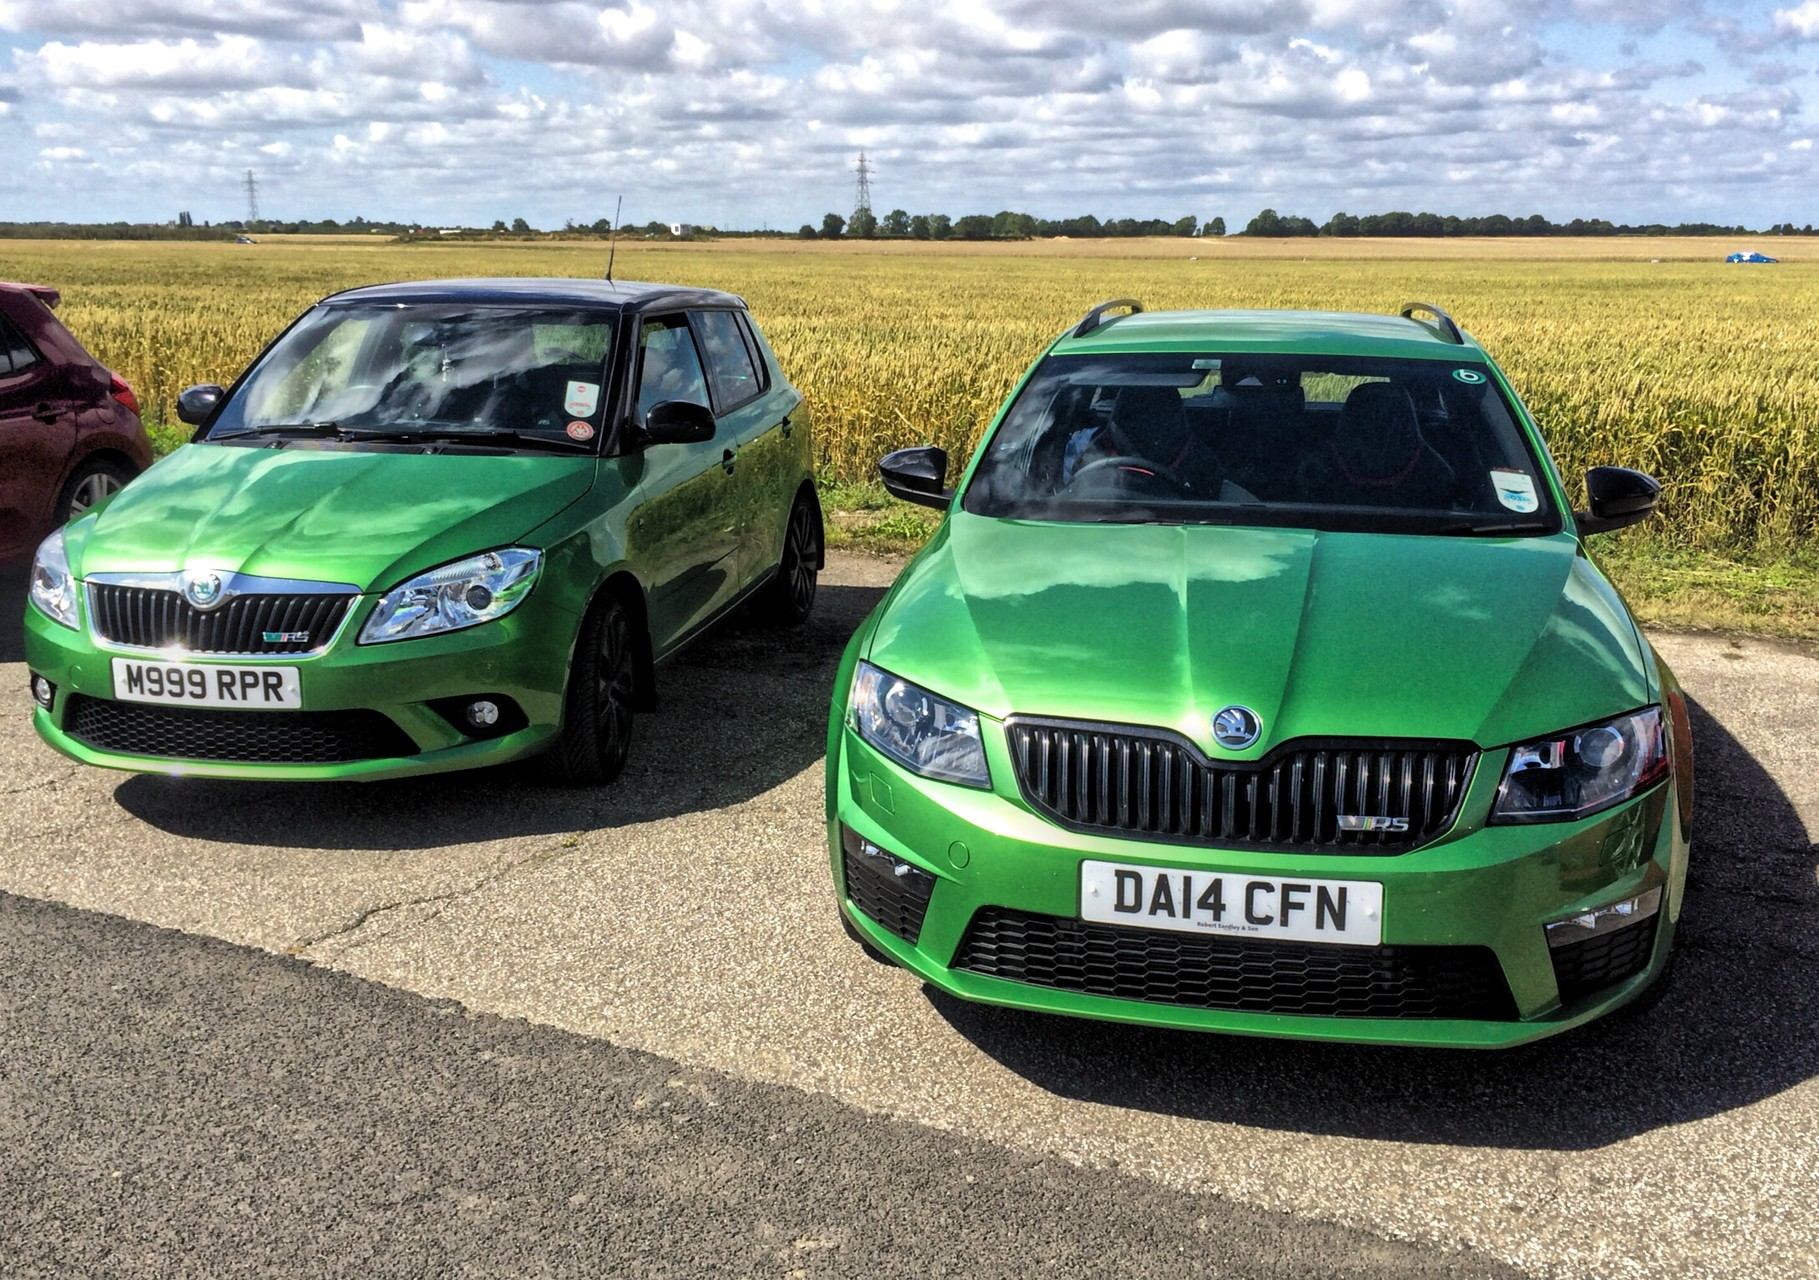 Briskoda trackday - Blyton near Scunthorpe. Your newsletter editor's car is on the left